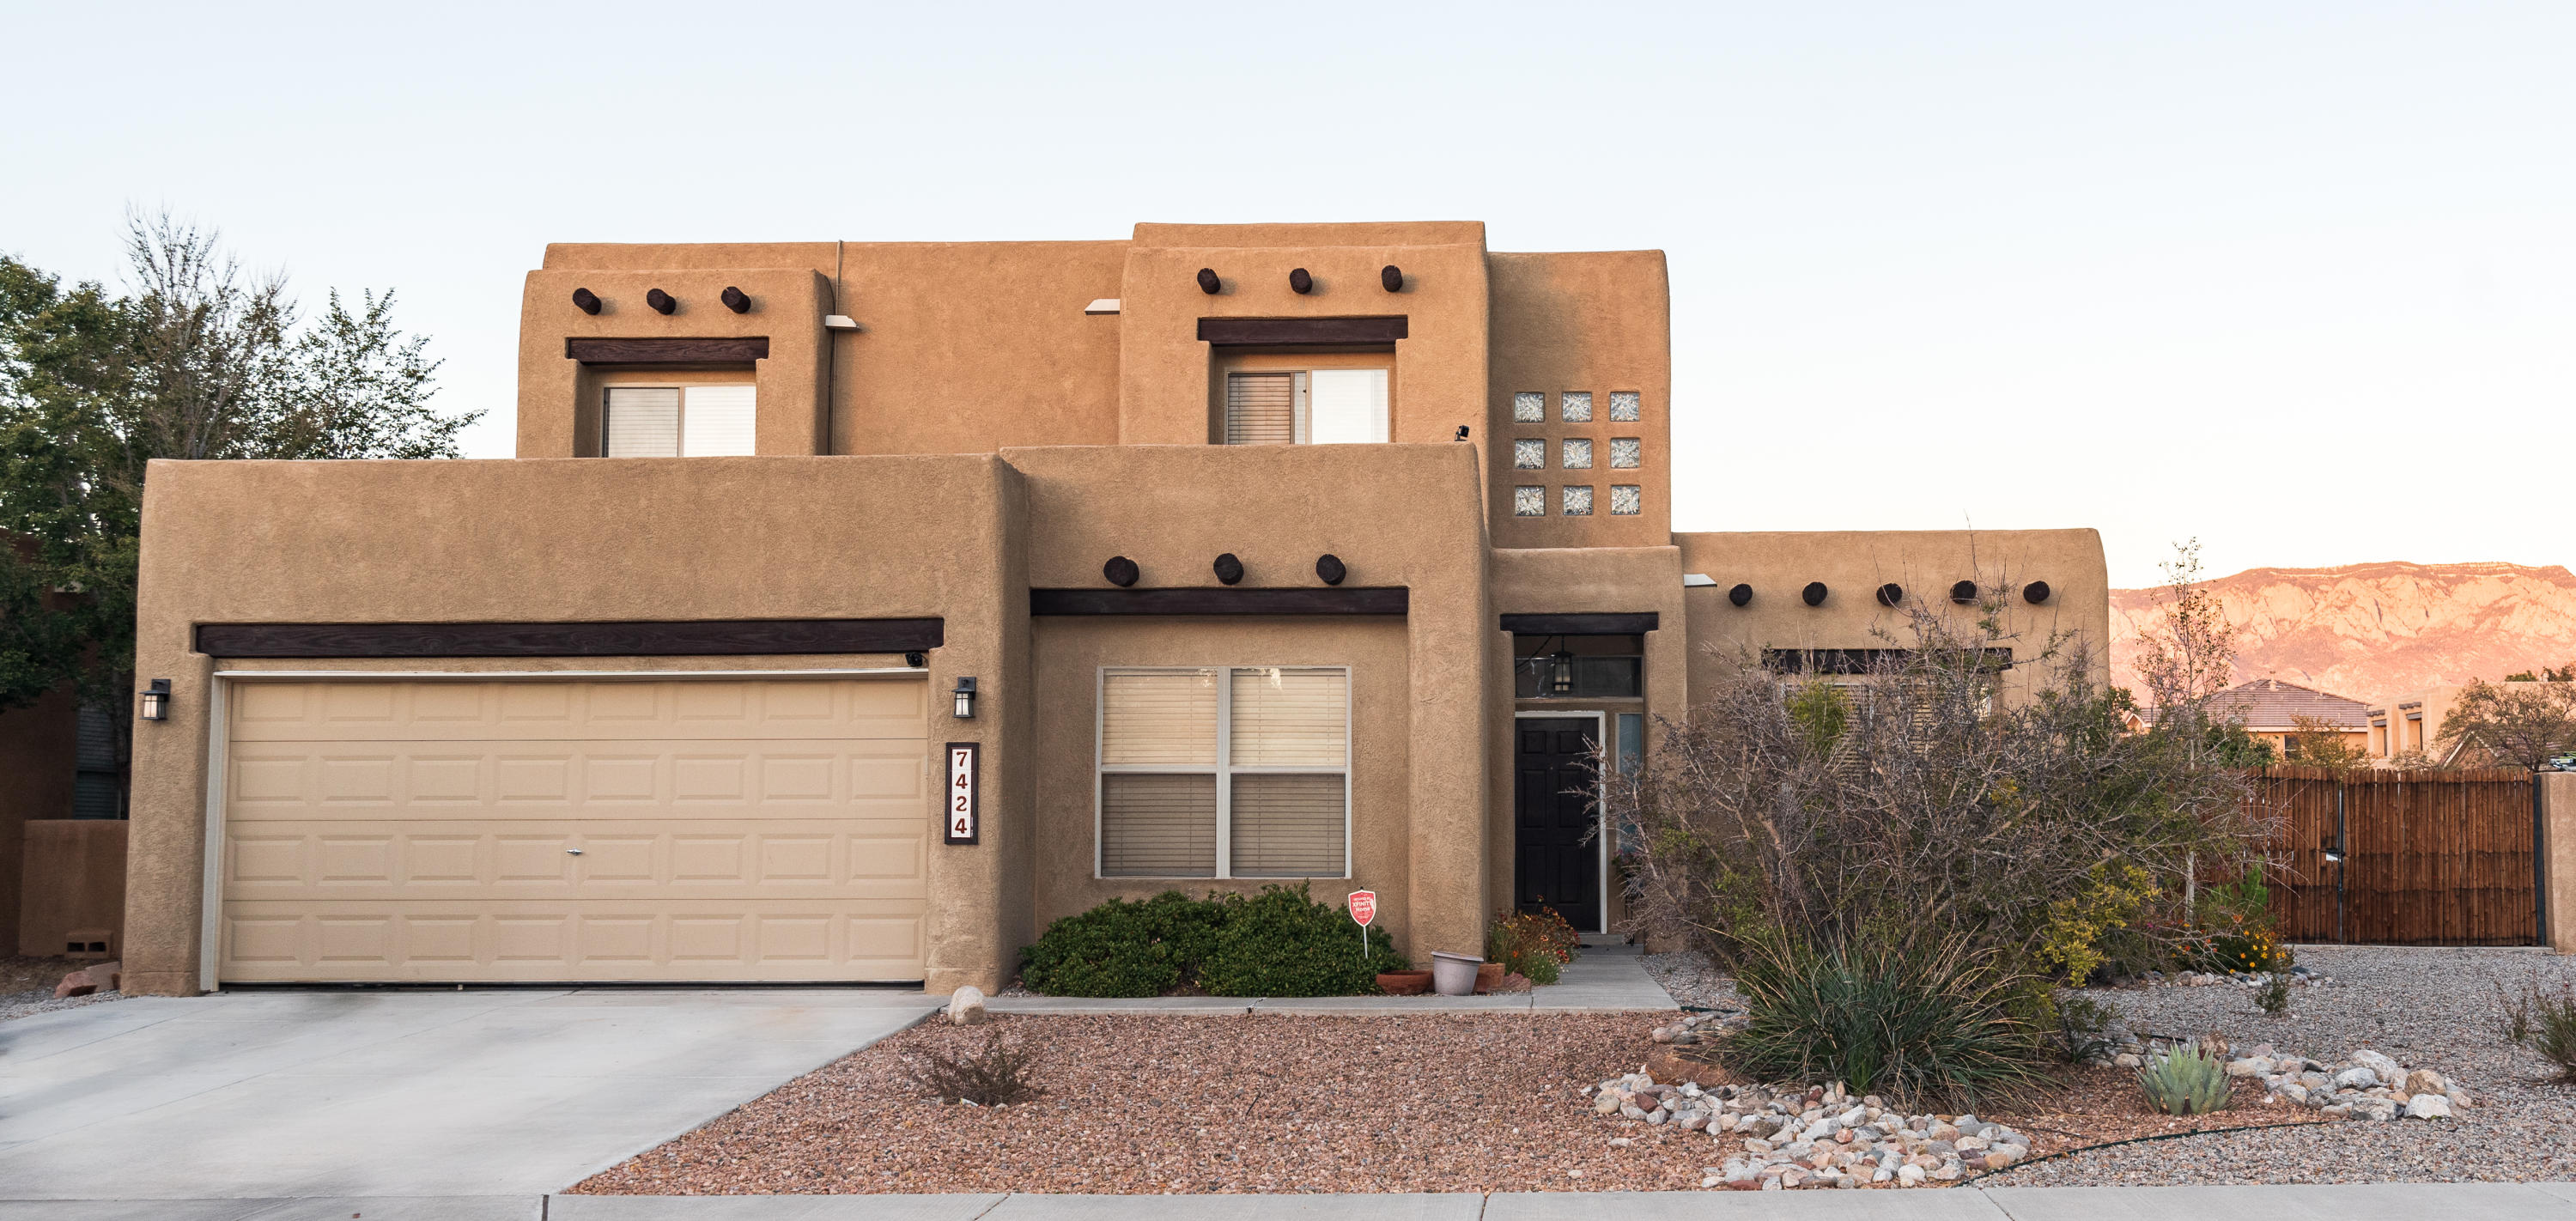 Nice 4 bedroom 3 full bath home with spacious office! Main bedroom upstairs with balcony to watch the morning sunrise over the Sandia mountain and two walk-in closets! One bedroom and one full bath downstairs. Come take a look!